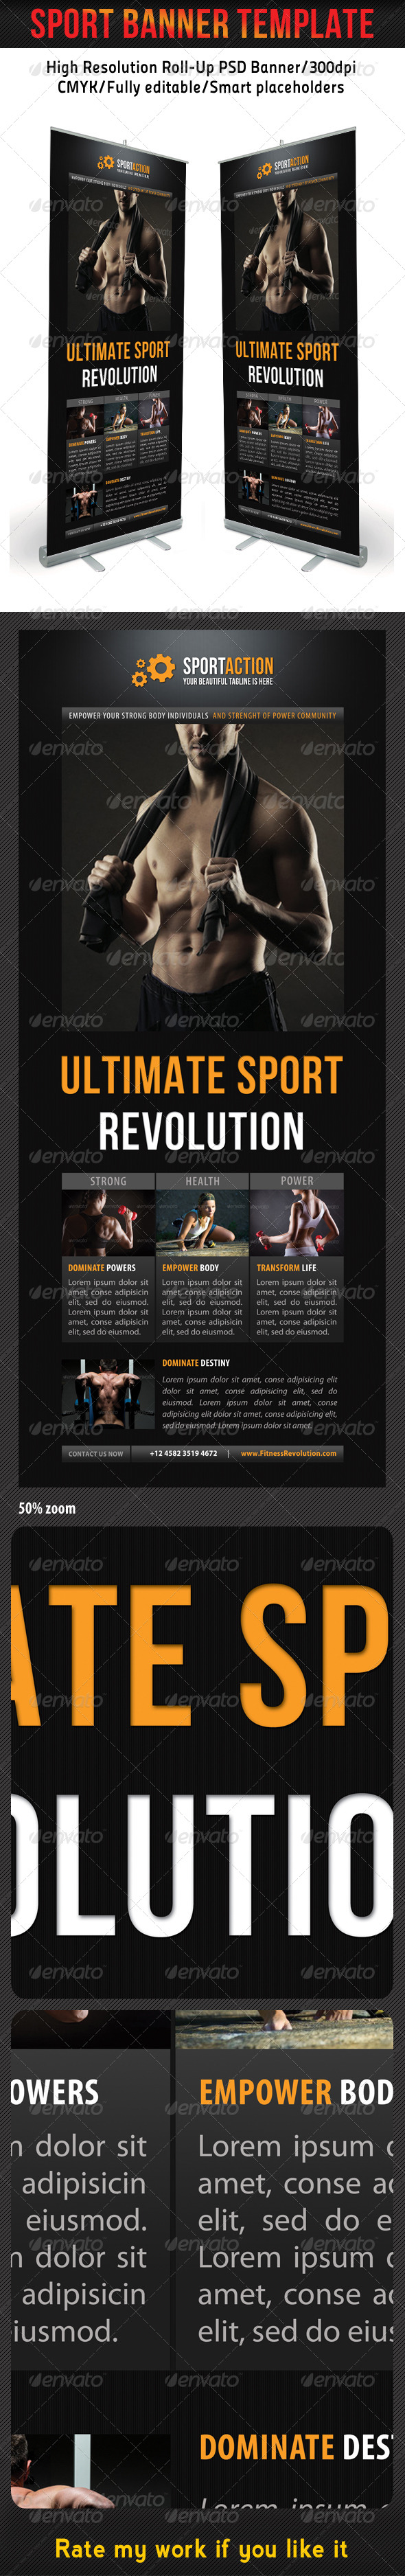 Sport Banner Template 13 - Signage Print Templates